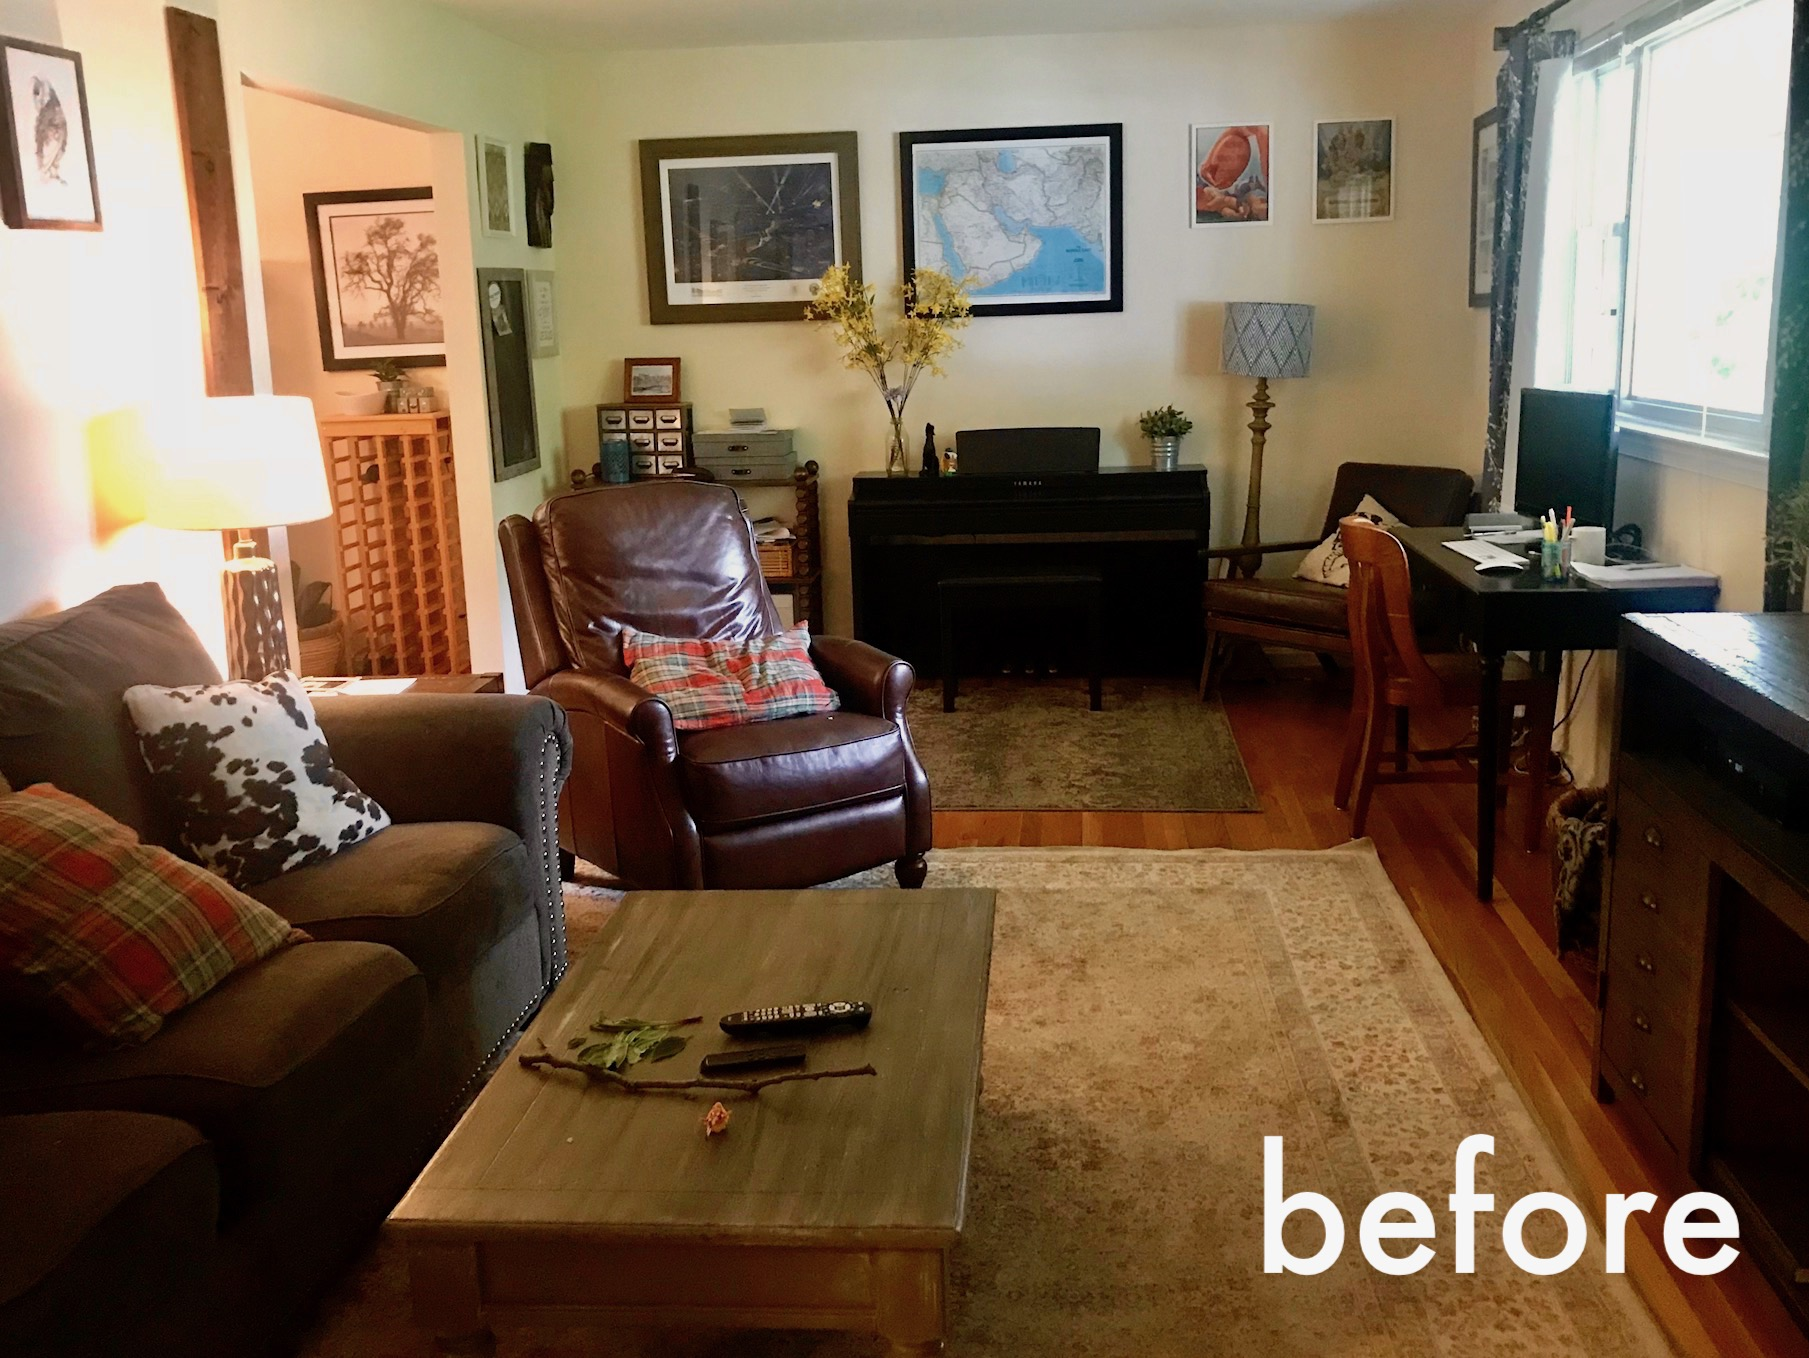 Rearranging Furniture Before And After And Then We Laughed